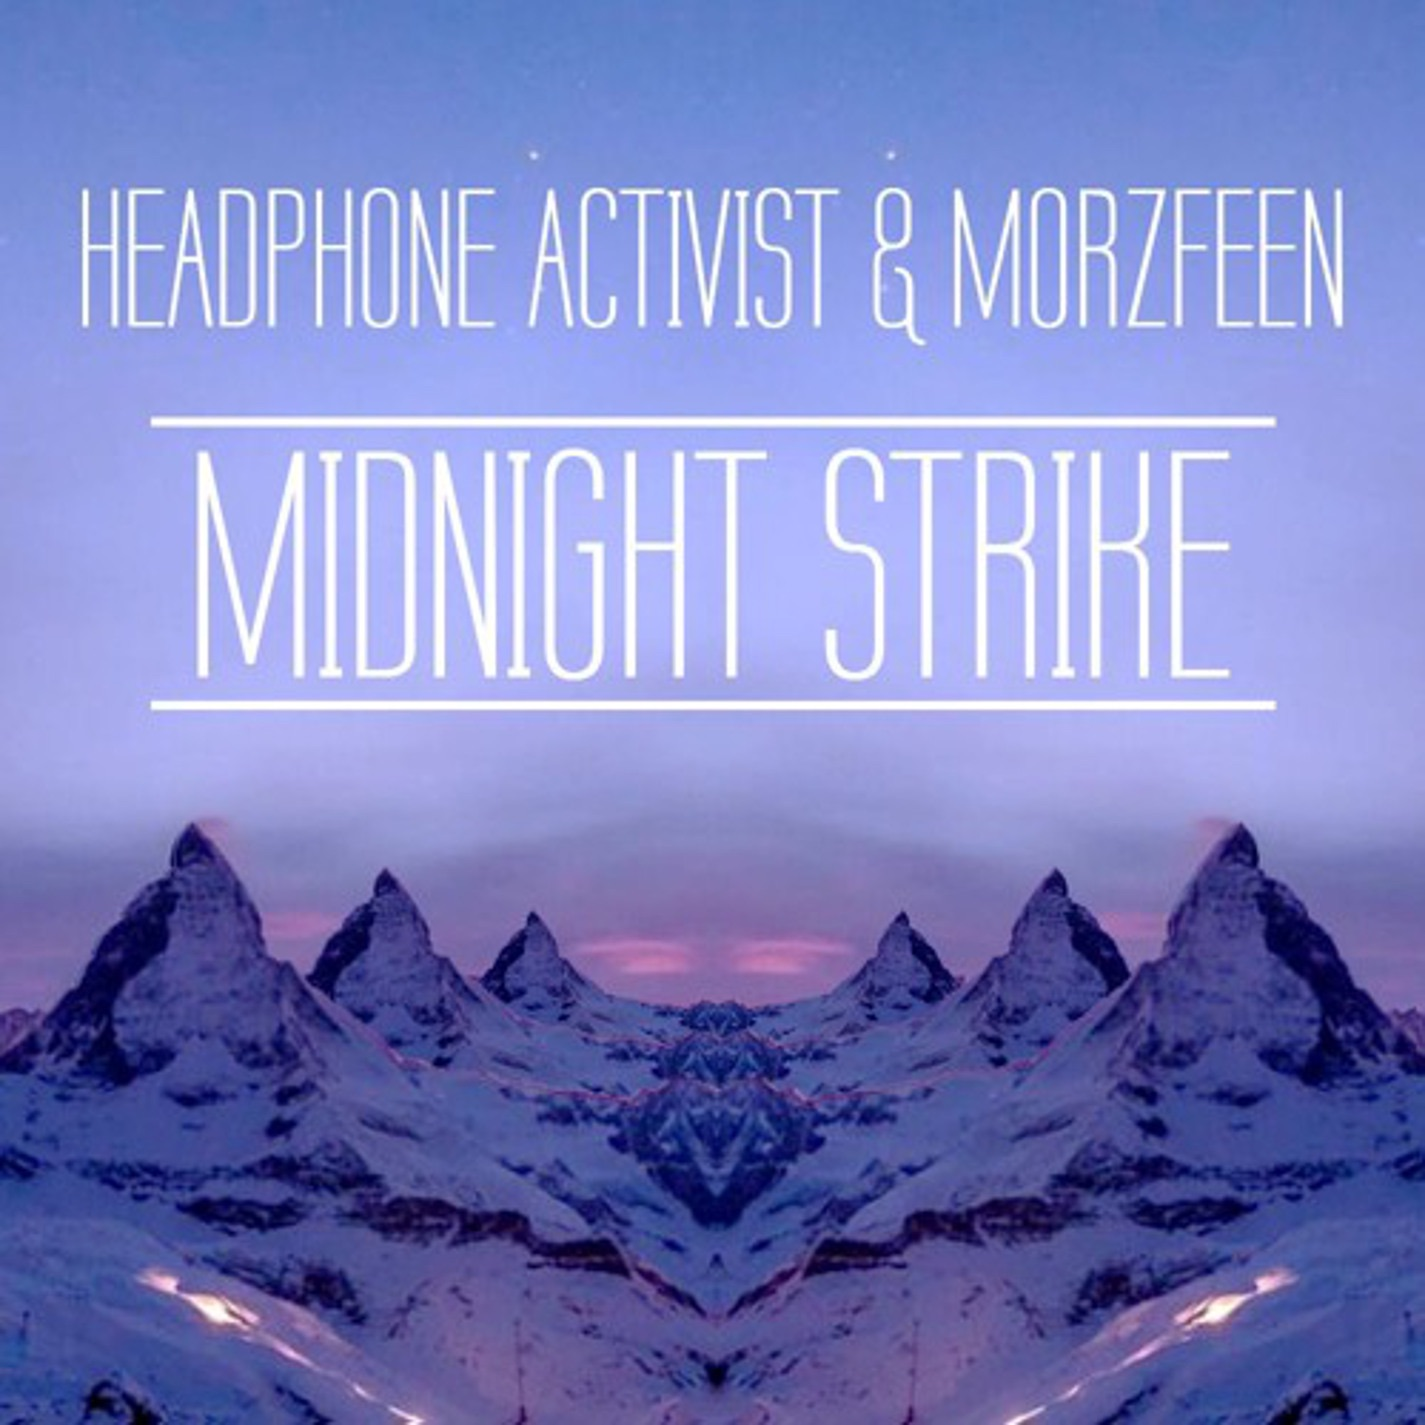 MP3 Songs Online:♫ Midnight Strike - Headphone Activist album Midnight Strike - Single. Electronic,Music listen to music online free without downloading.